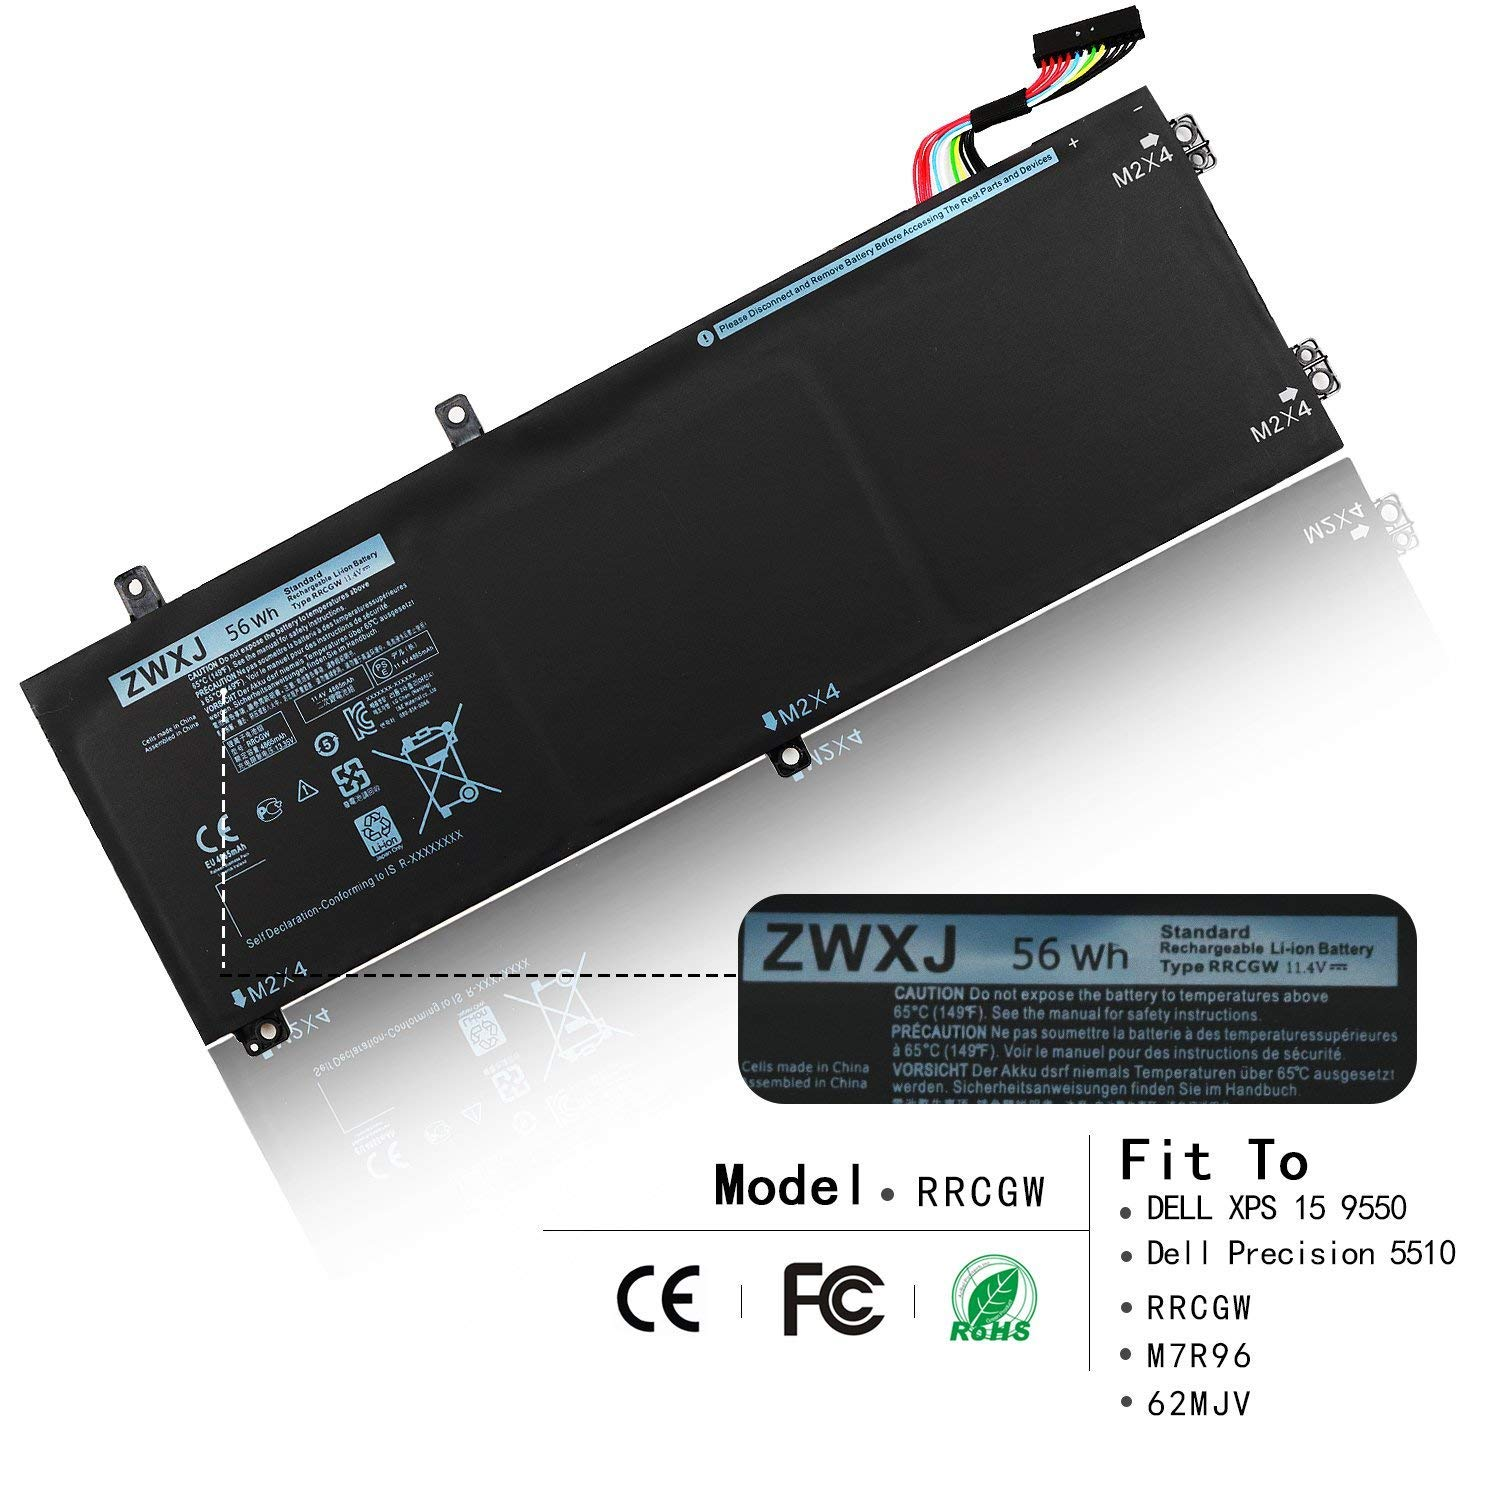 Xps Battery Charger Wiring Diagram Library Amazoncom Zwxj Laptop Rrcgw114v 56wh For Dell